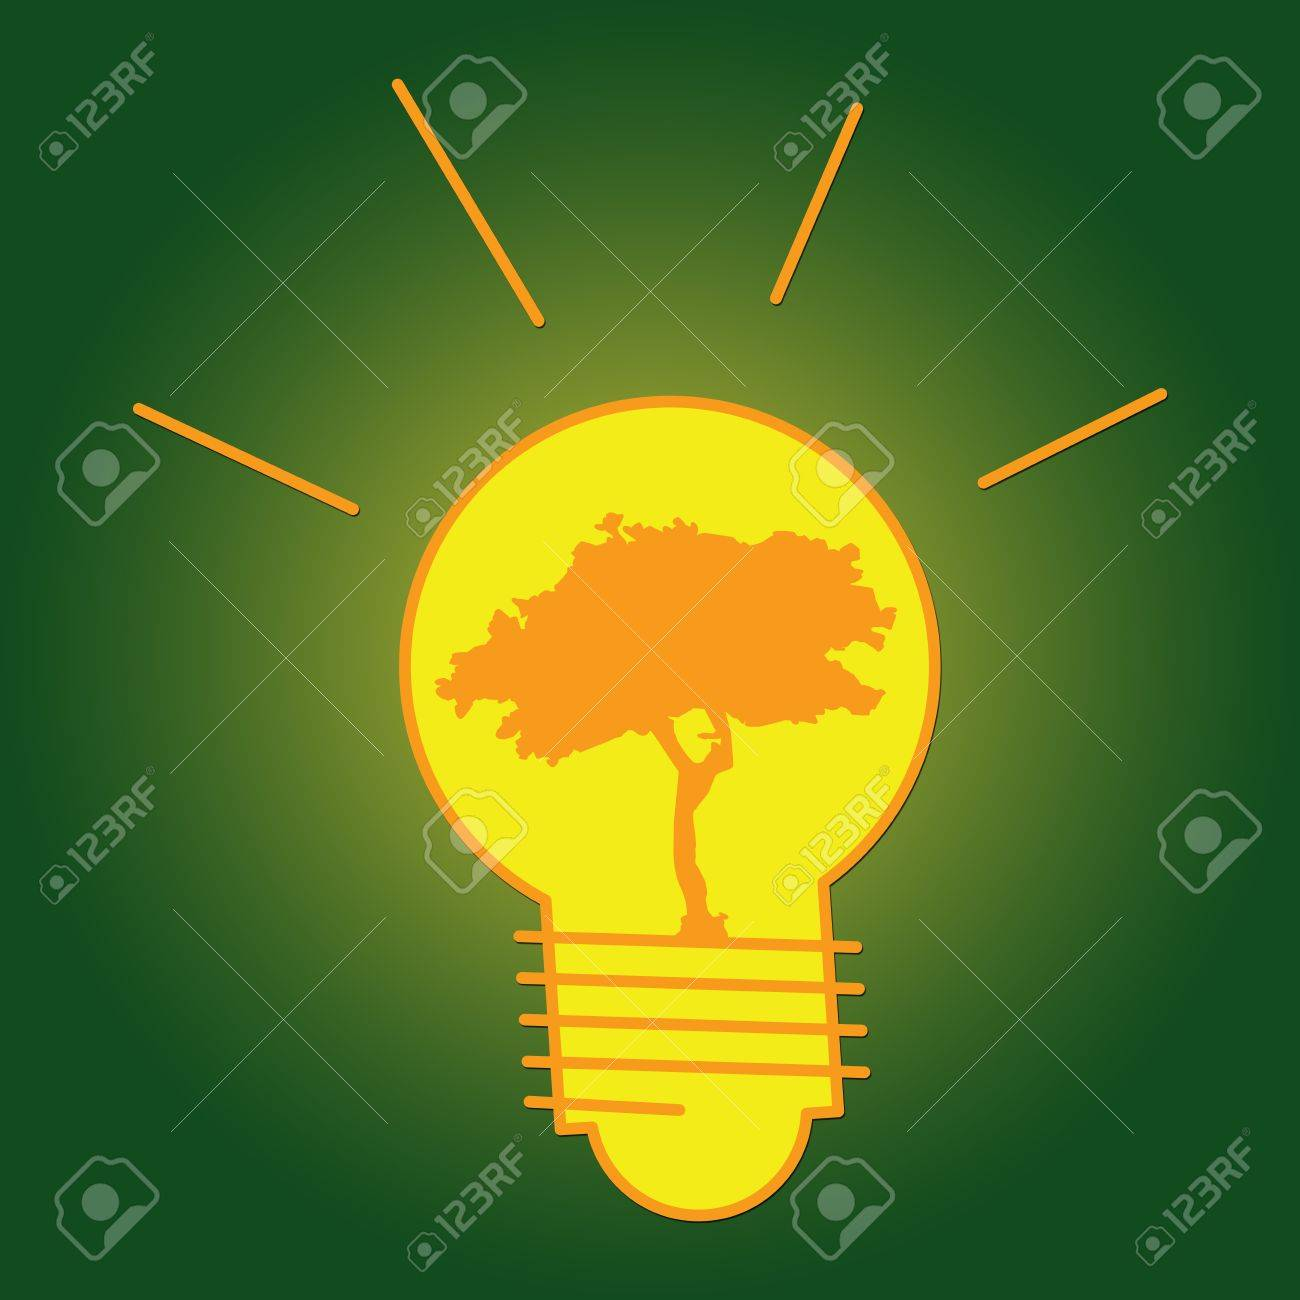 The Light Bulb With Tree Inside for Save The Earth or Stop Global Warming Campaign Stock Photo - 17404162